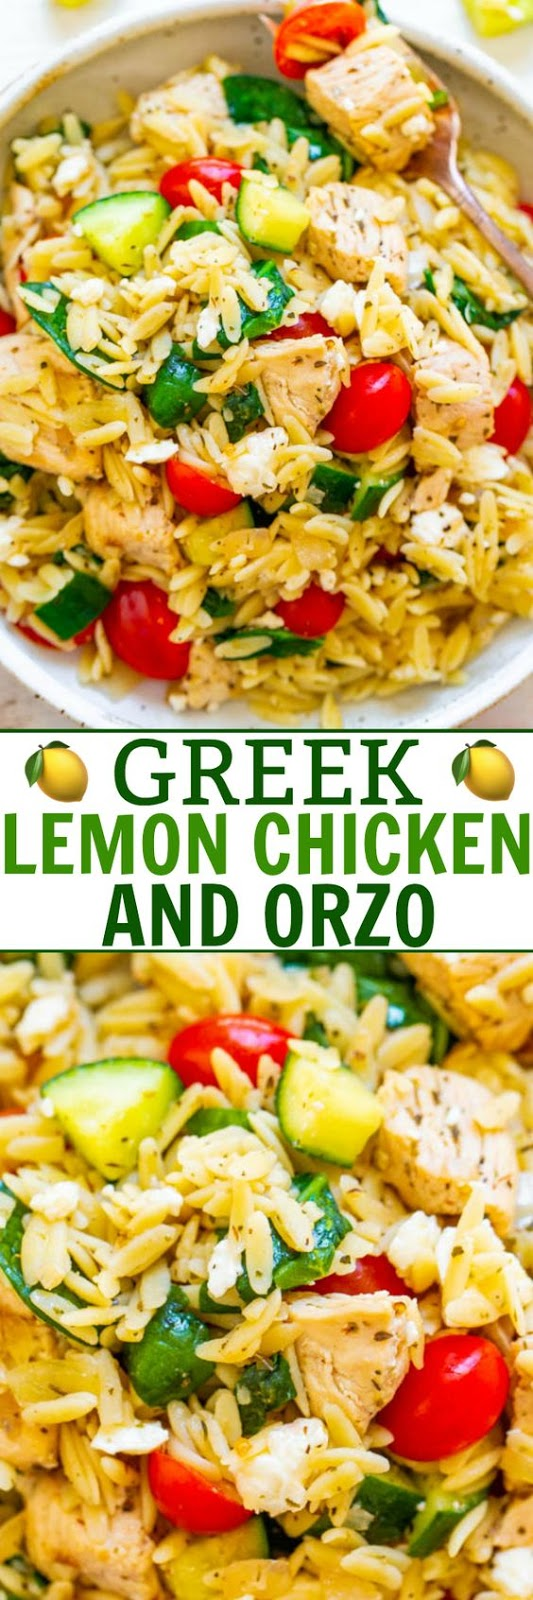 Greek Lemon Chicken and Orzo - EASY, ready in 25 minutes, and feeds a crowd!! Juicy lemon chicken with orzo, fresh spinach, cucumbers, and tomatoes make this a dinnertime WINNER! Great for parties, picnics, and potlucks!!